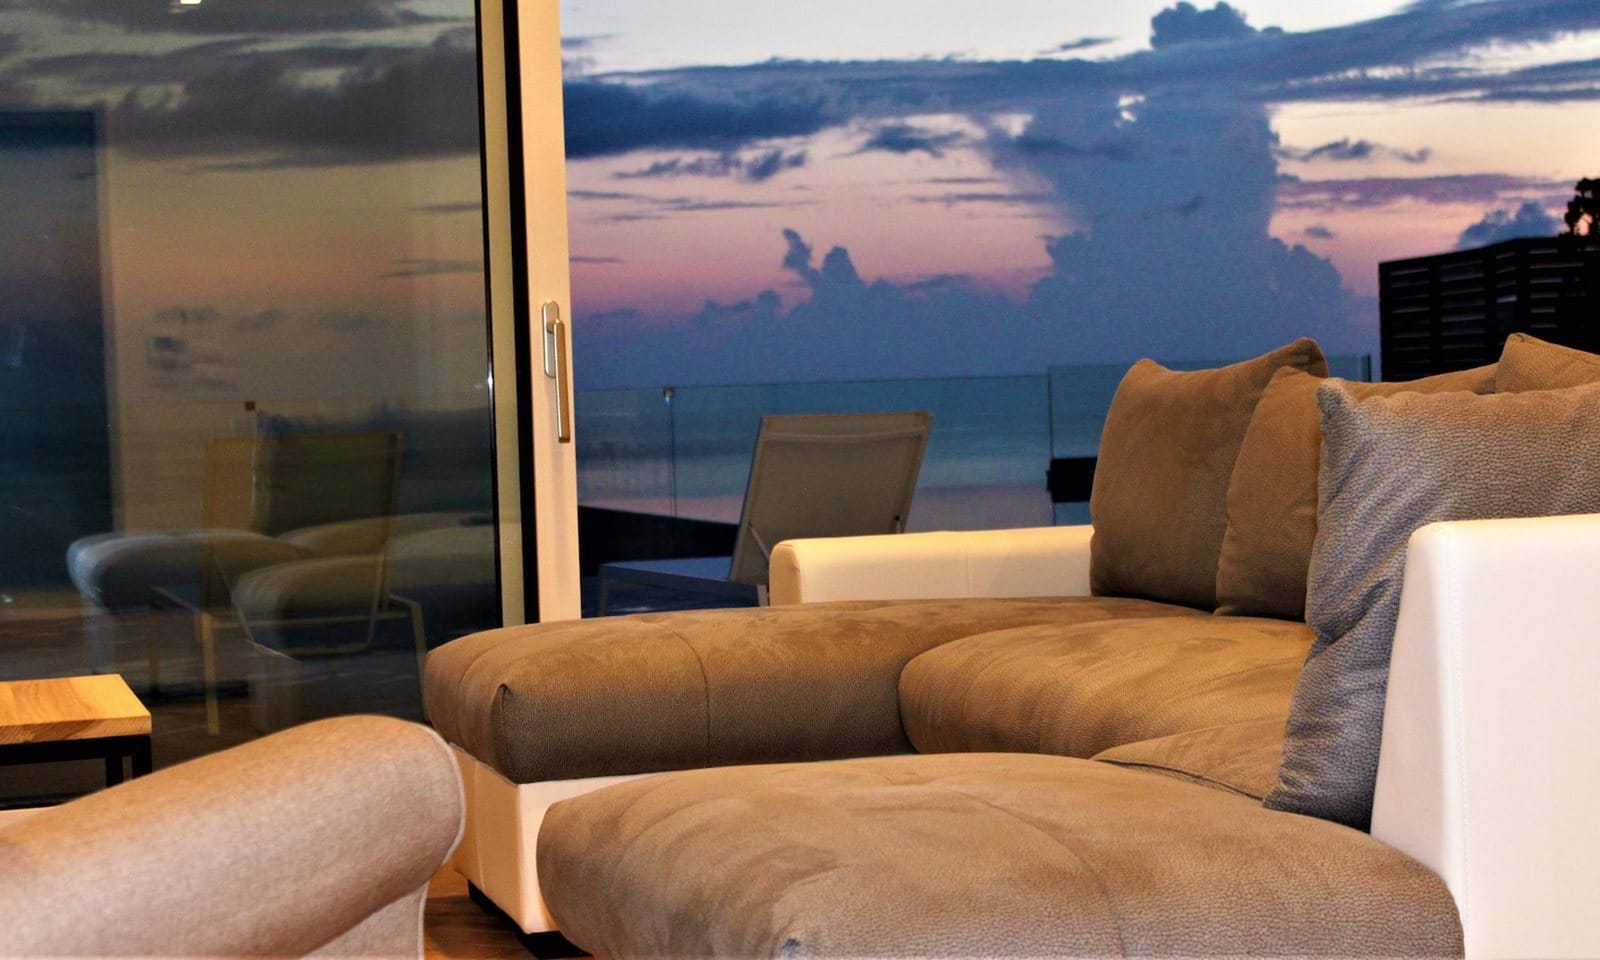 living room and sunset